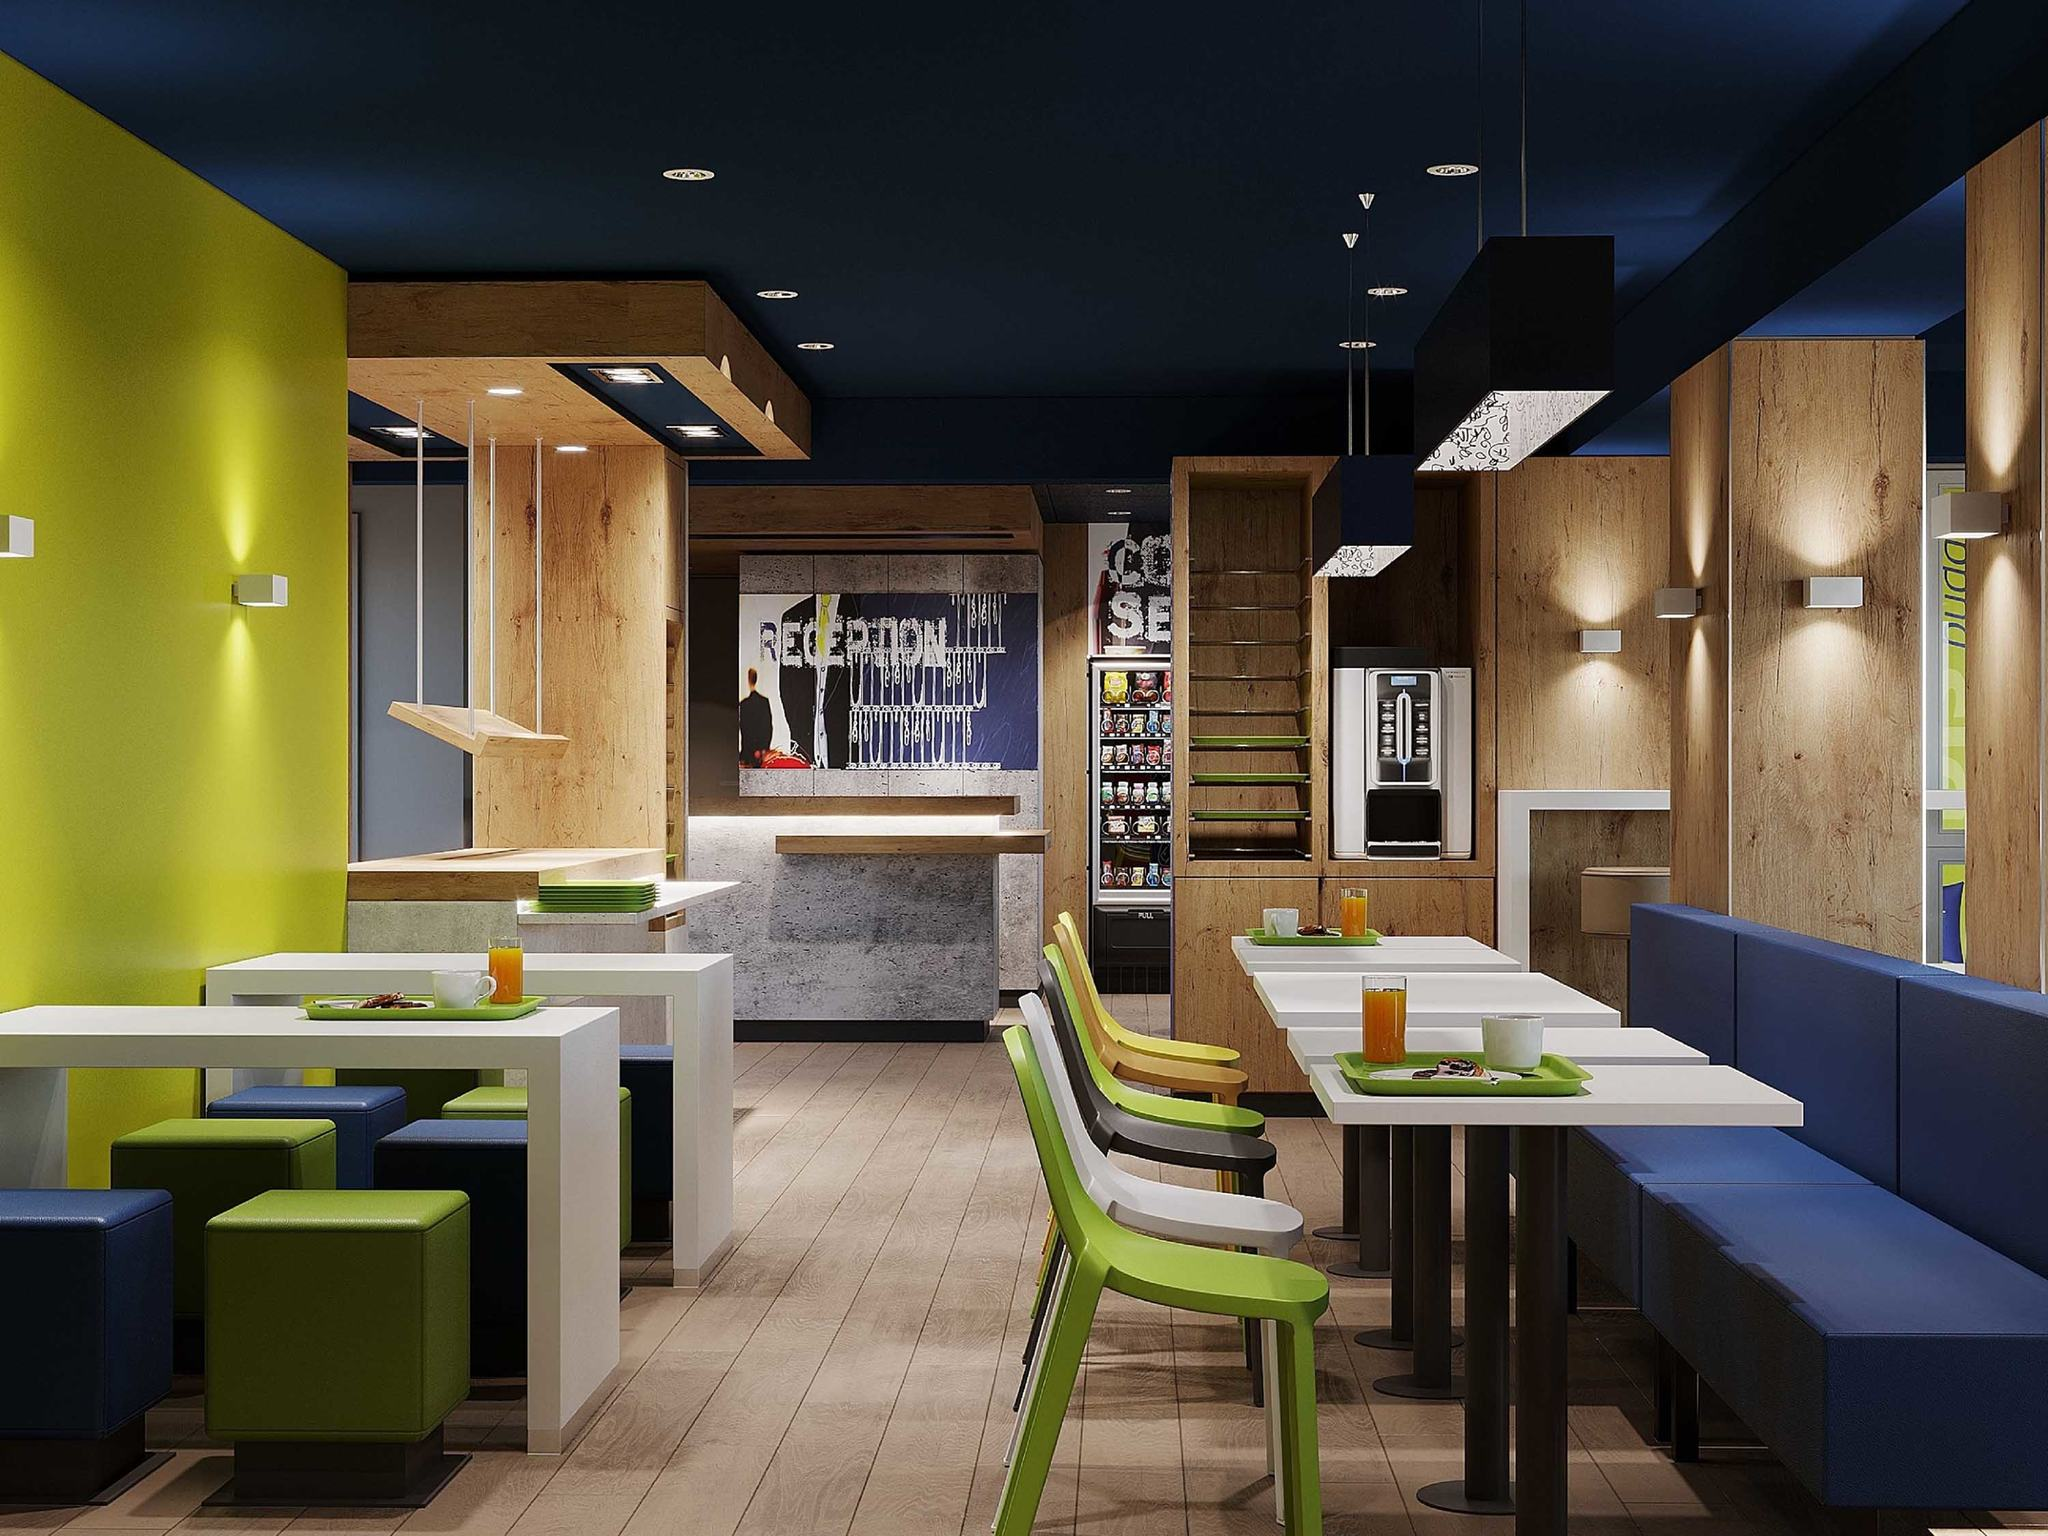 Hotel in chasseneuil du poitou ibis budget poitiers nord for Hotels futuroscope